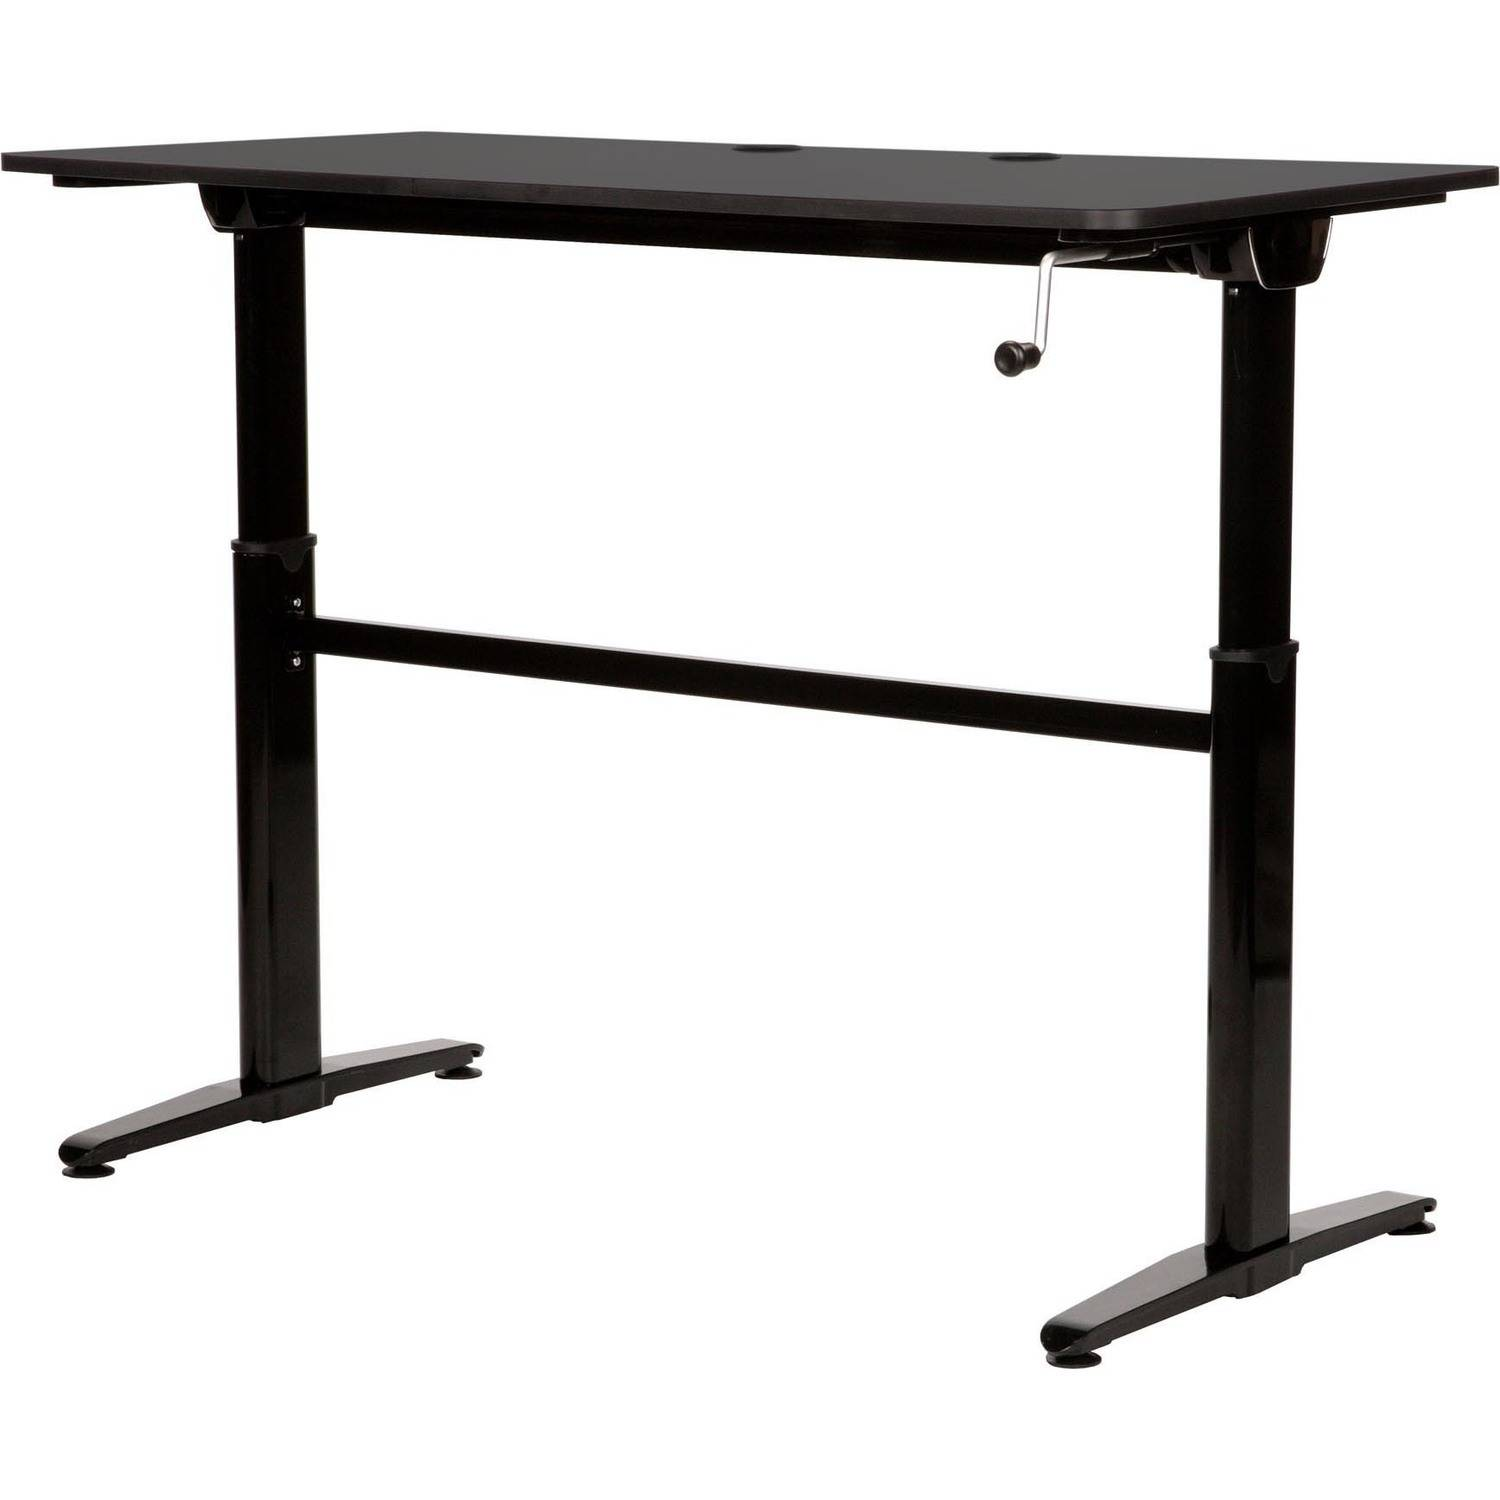 cool living adjustable height stand desk - walmart